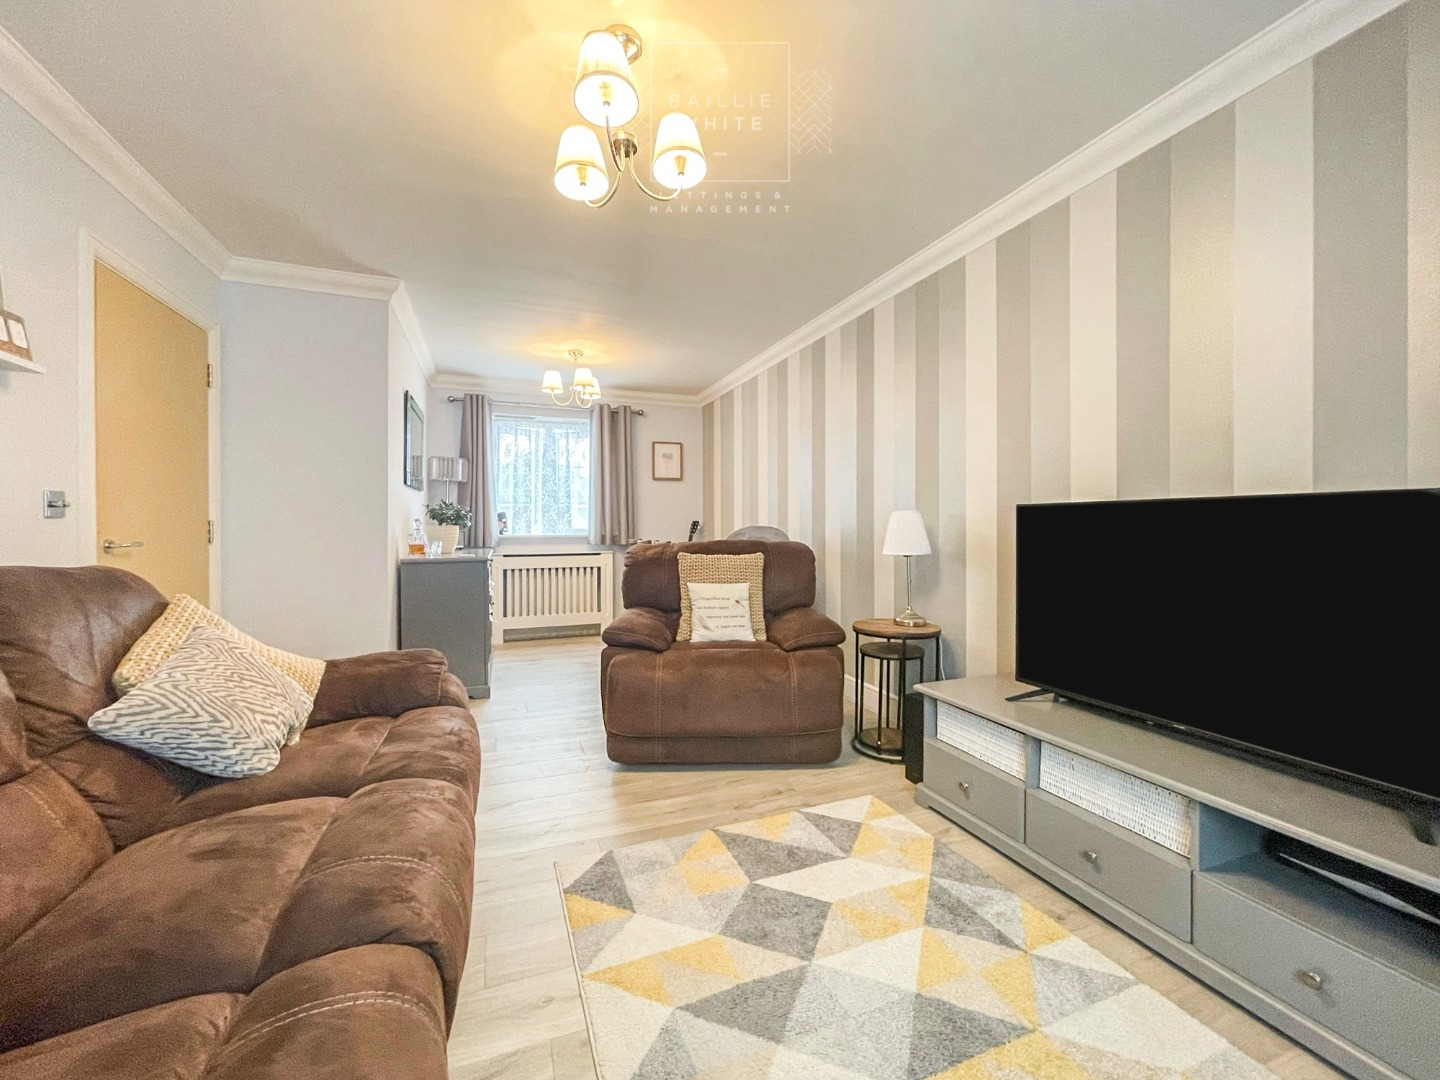 2 bed apartment to rent in Salisbury Close, Rayleigh - Property Image 1